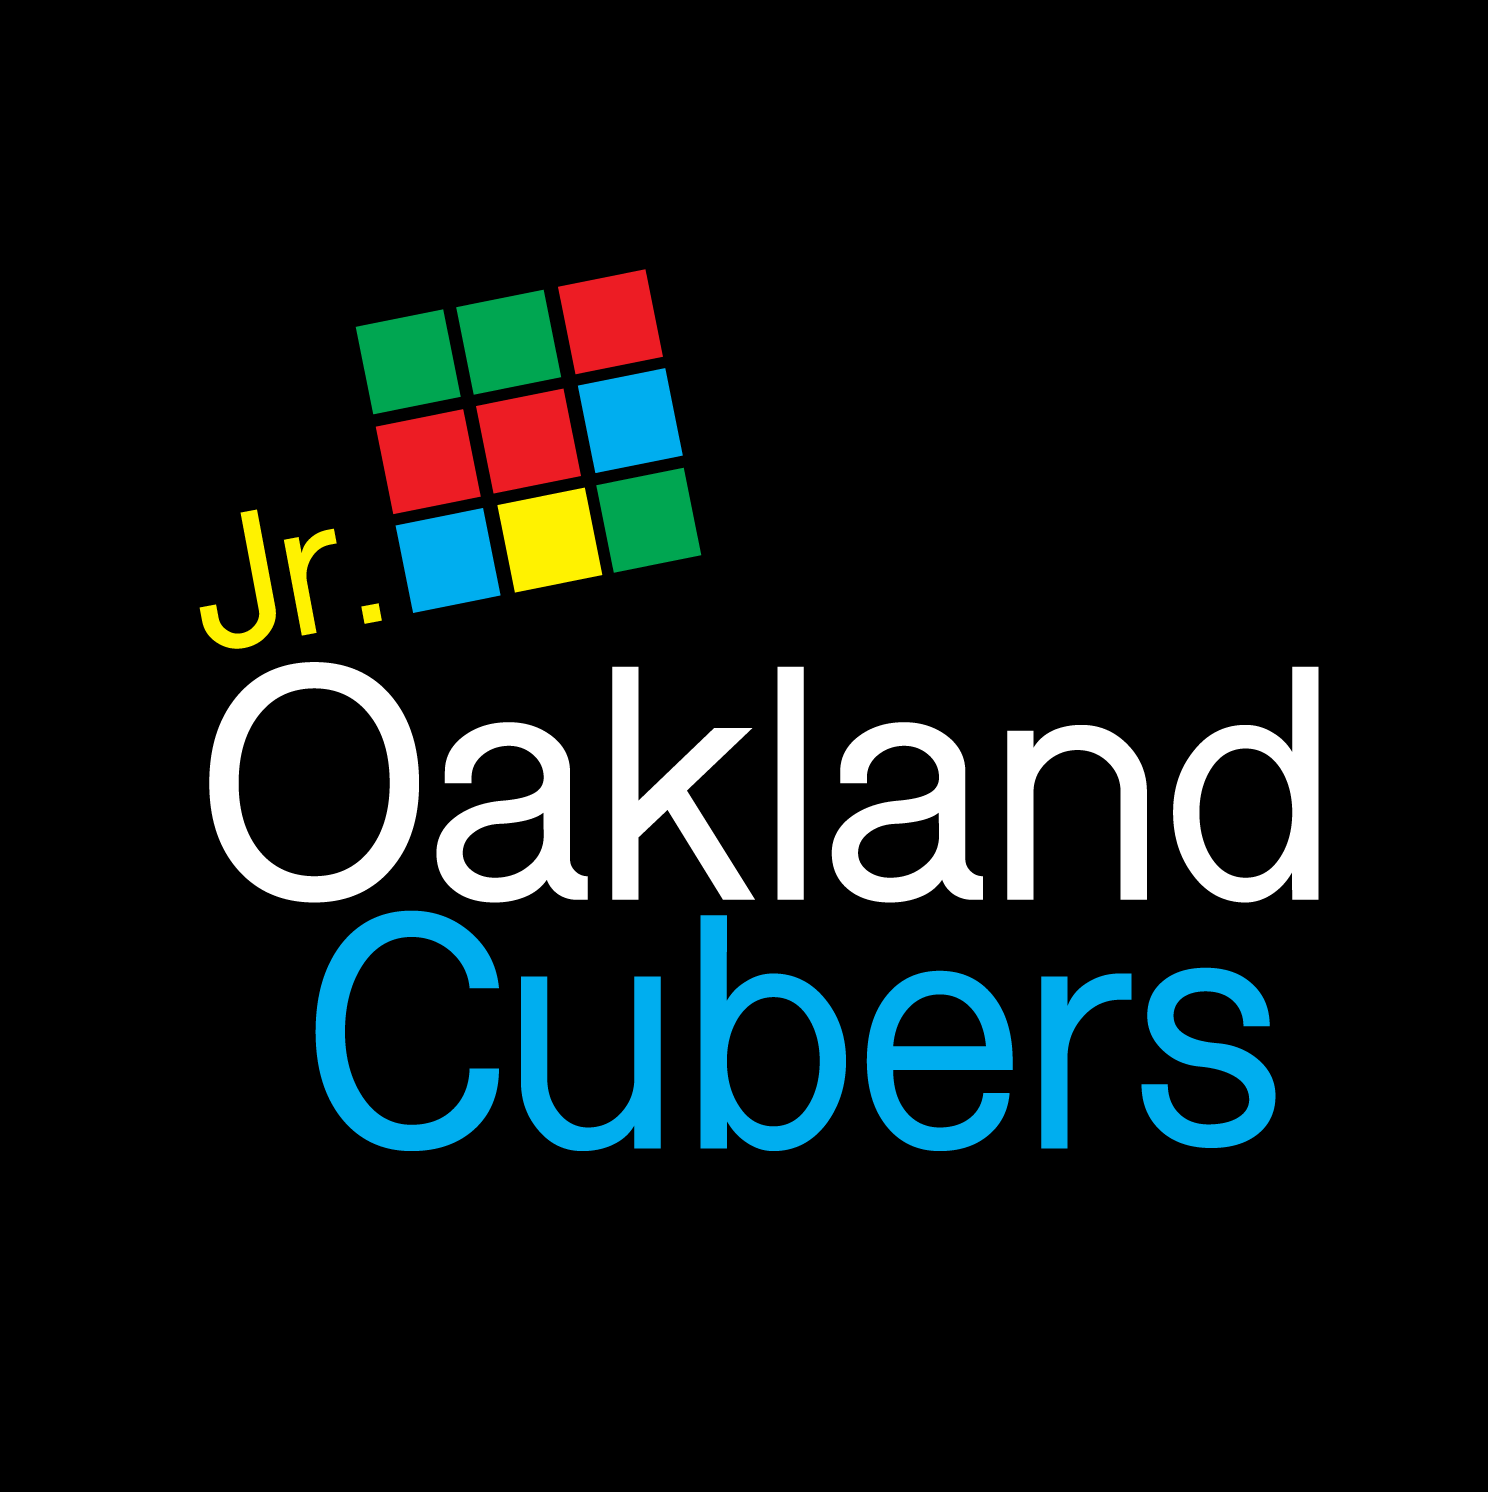 Jr. Oakland Cubers